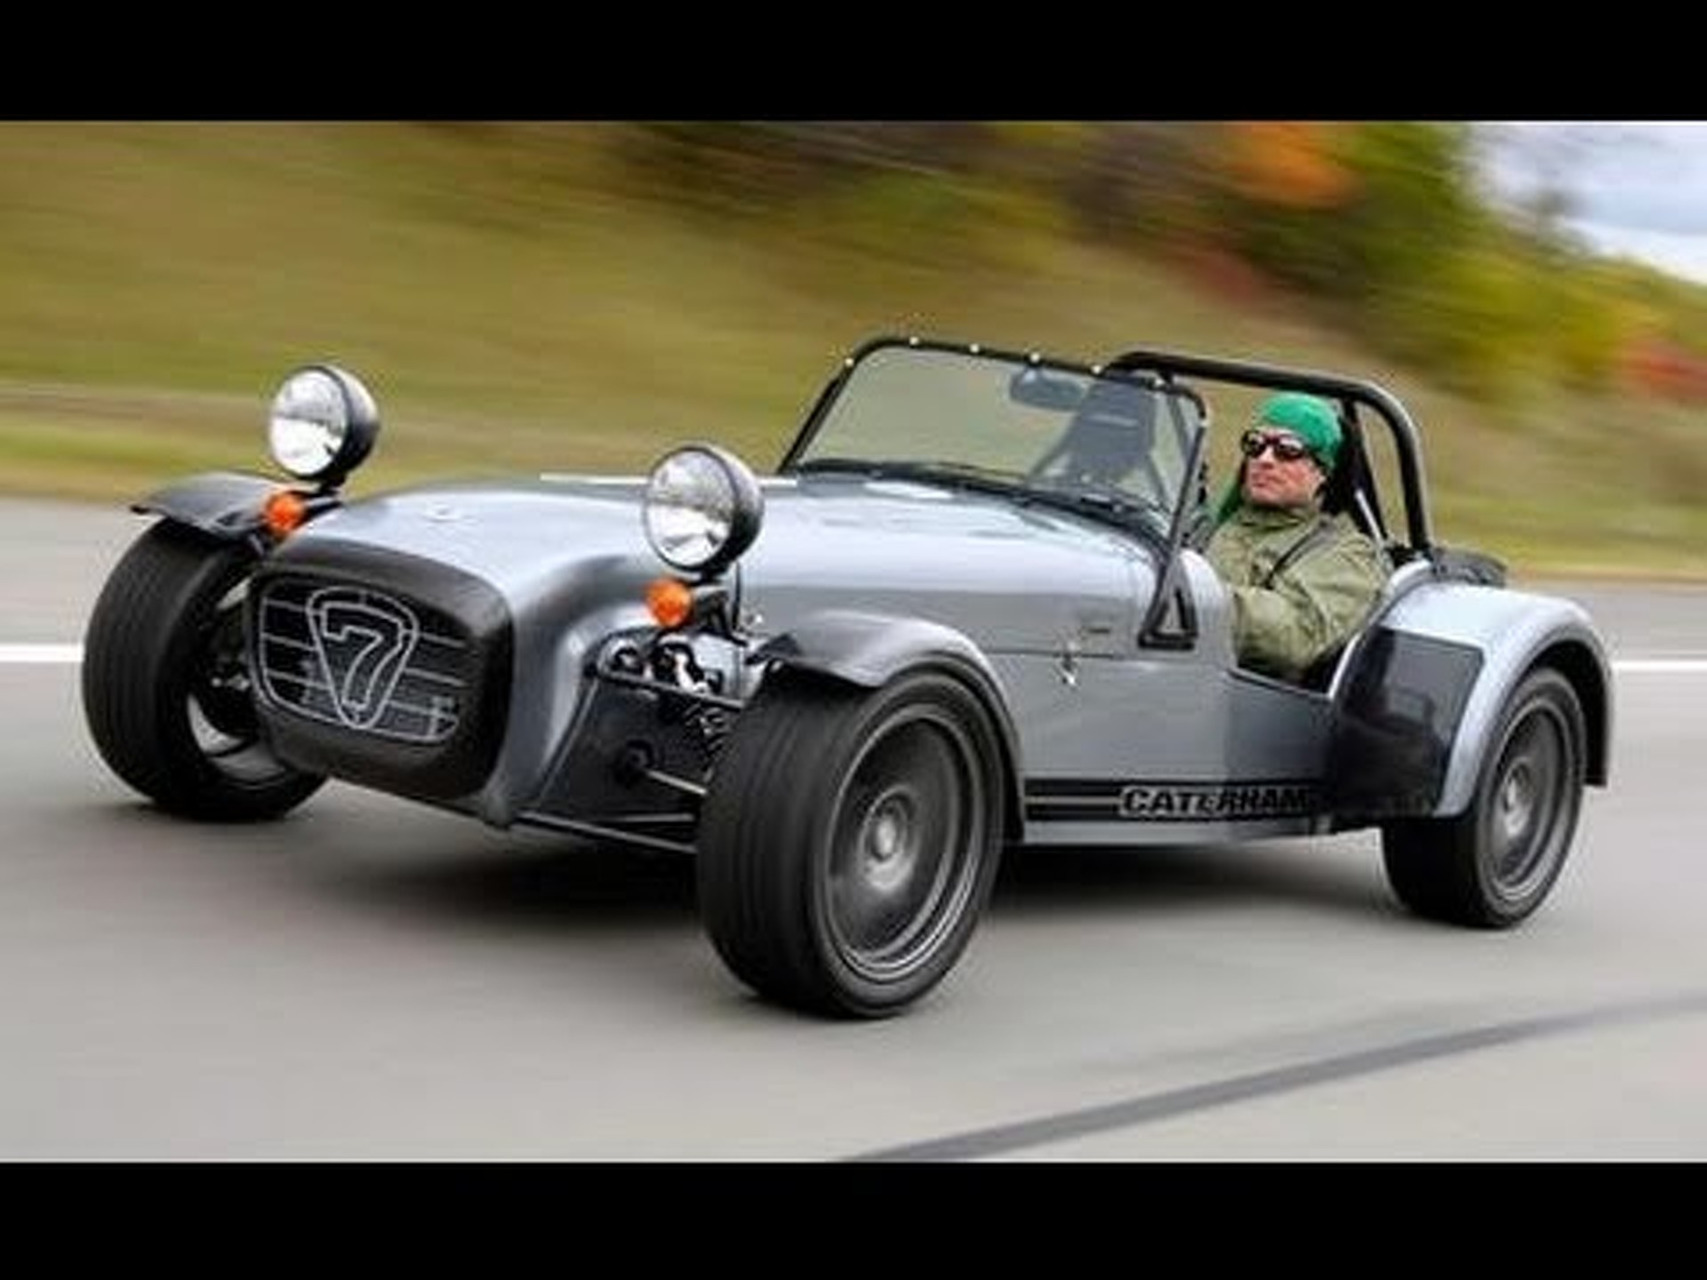 2008 Caterham 7 Superlight R400 - Car and Driver